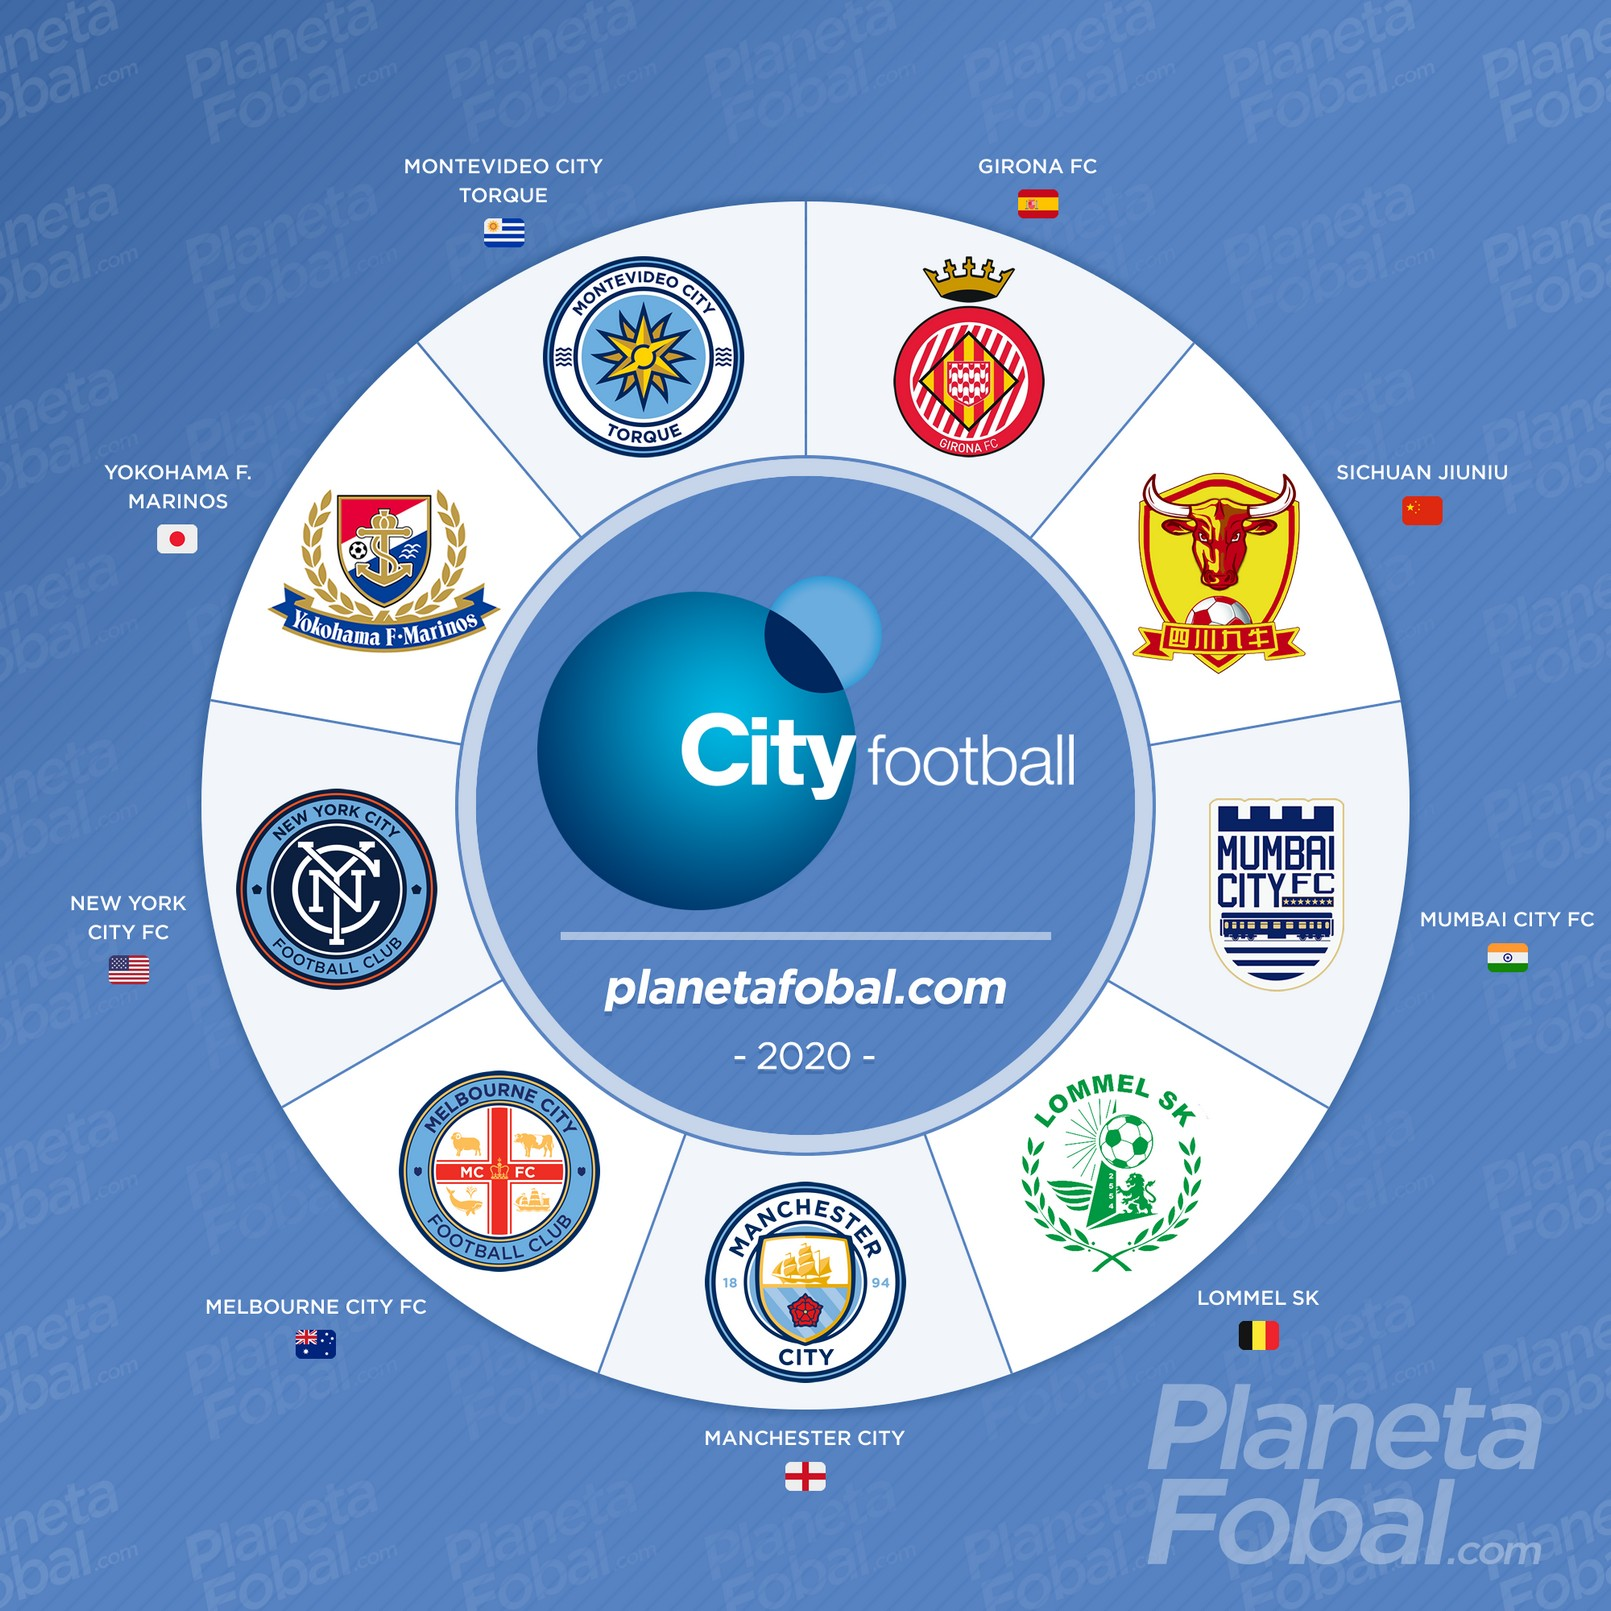 city-football-group-equipos-2013-2020-qw